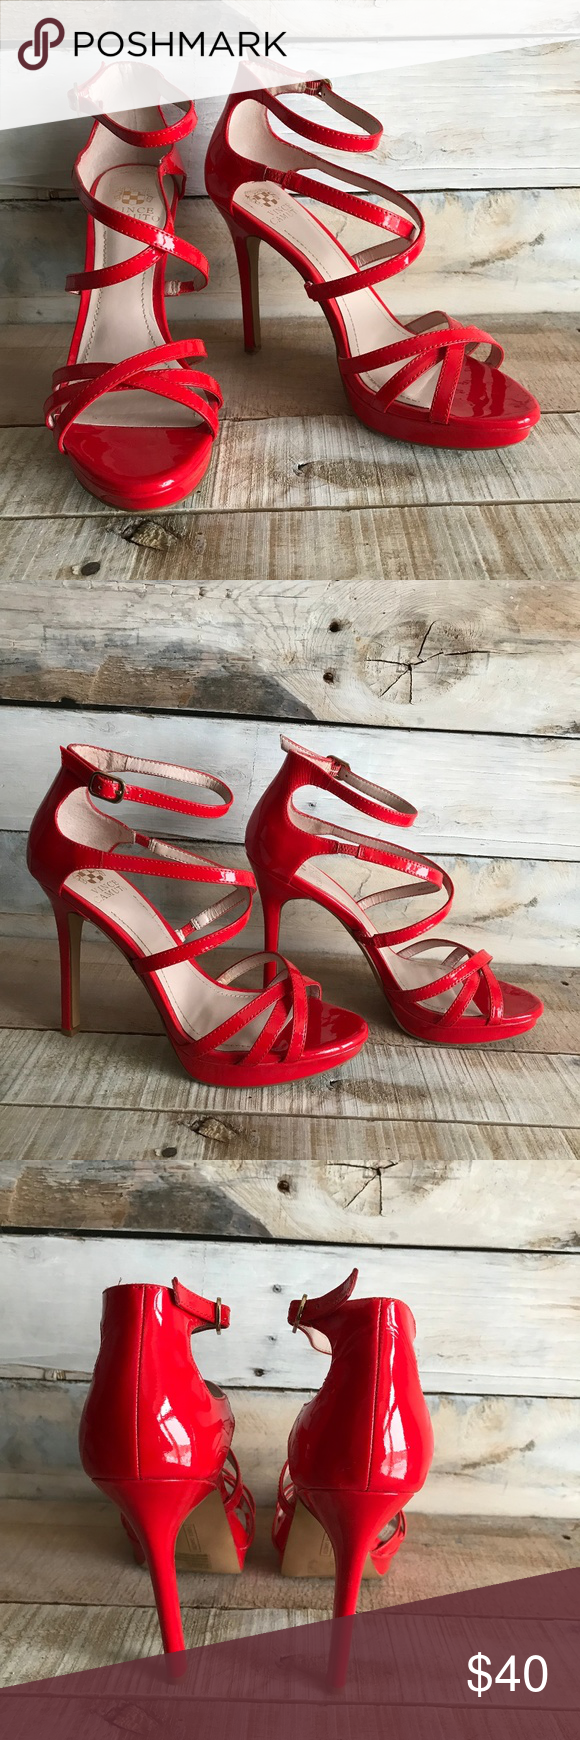 1ae8d3604702 Vince Camuto Red Strappy Stiletto Heels 7.5M These stylish   sexy Vince  Camuto heels are in great condition! Only worn once or twice.